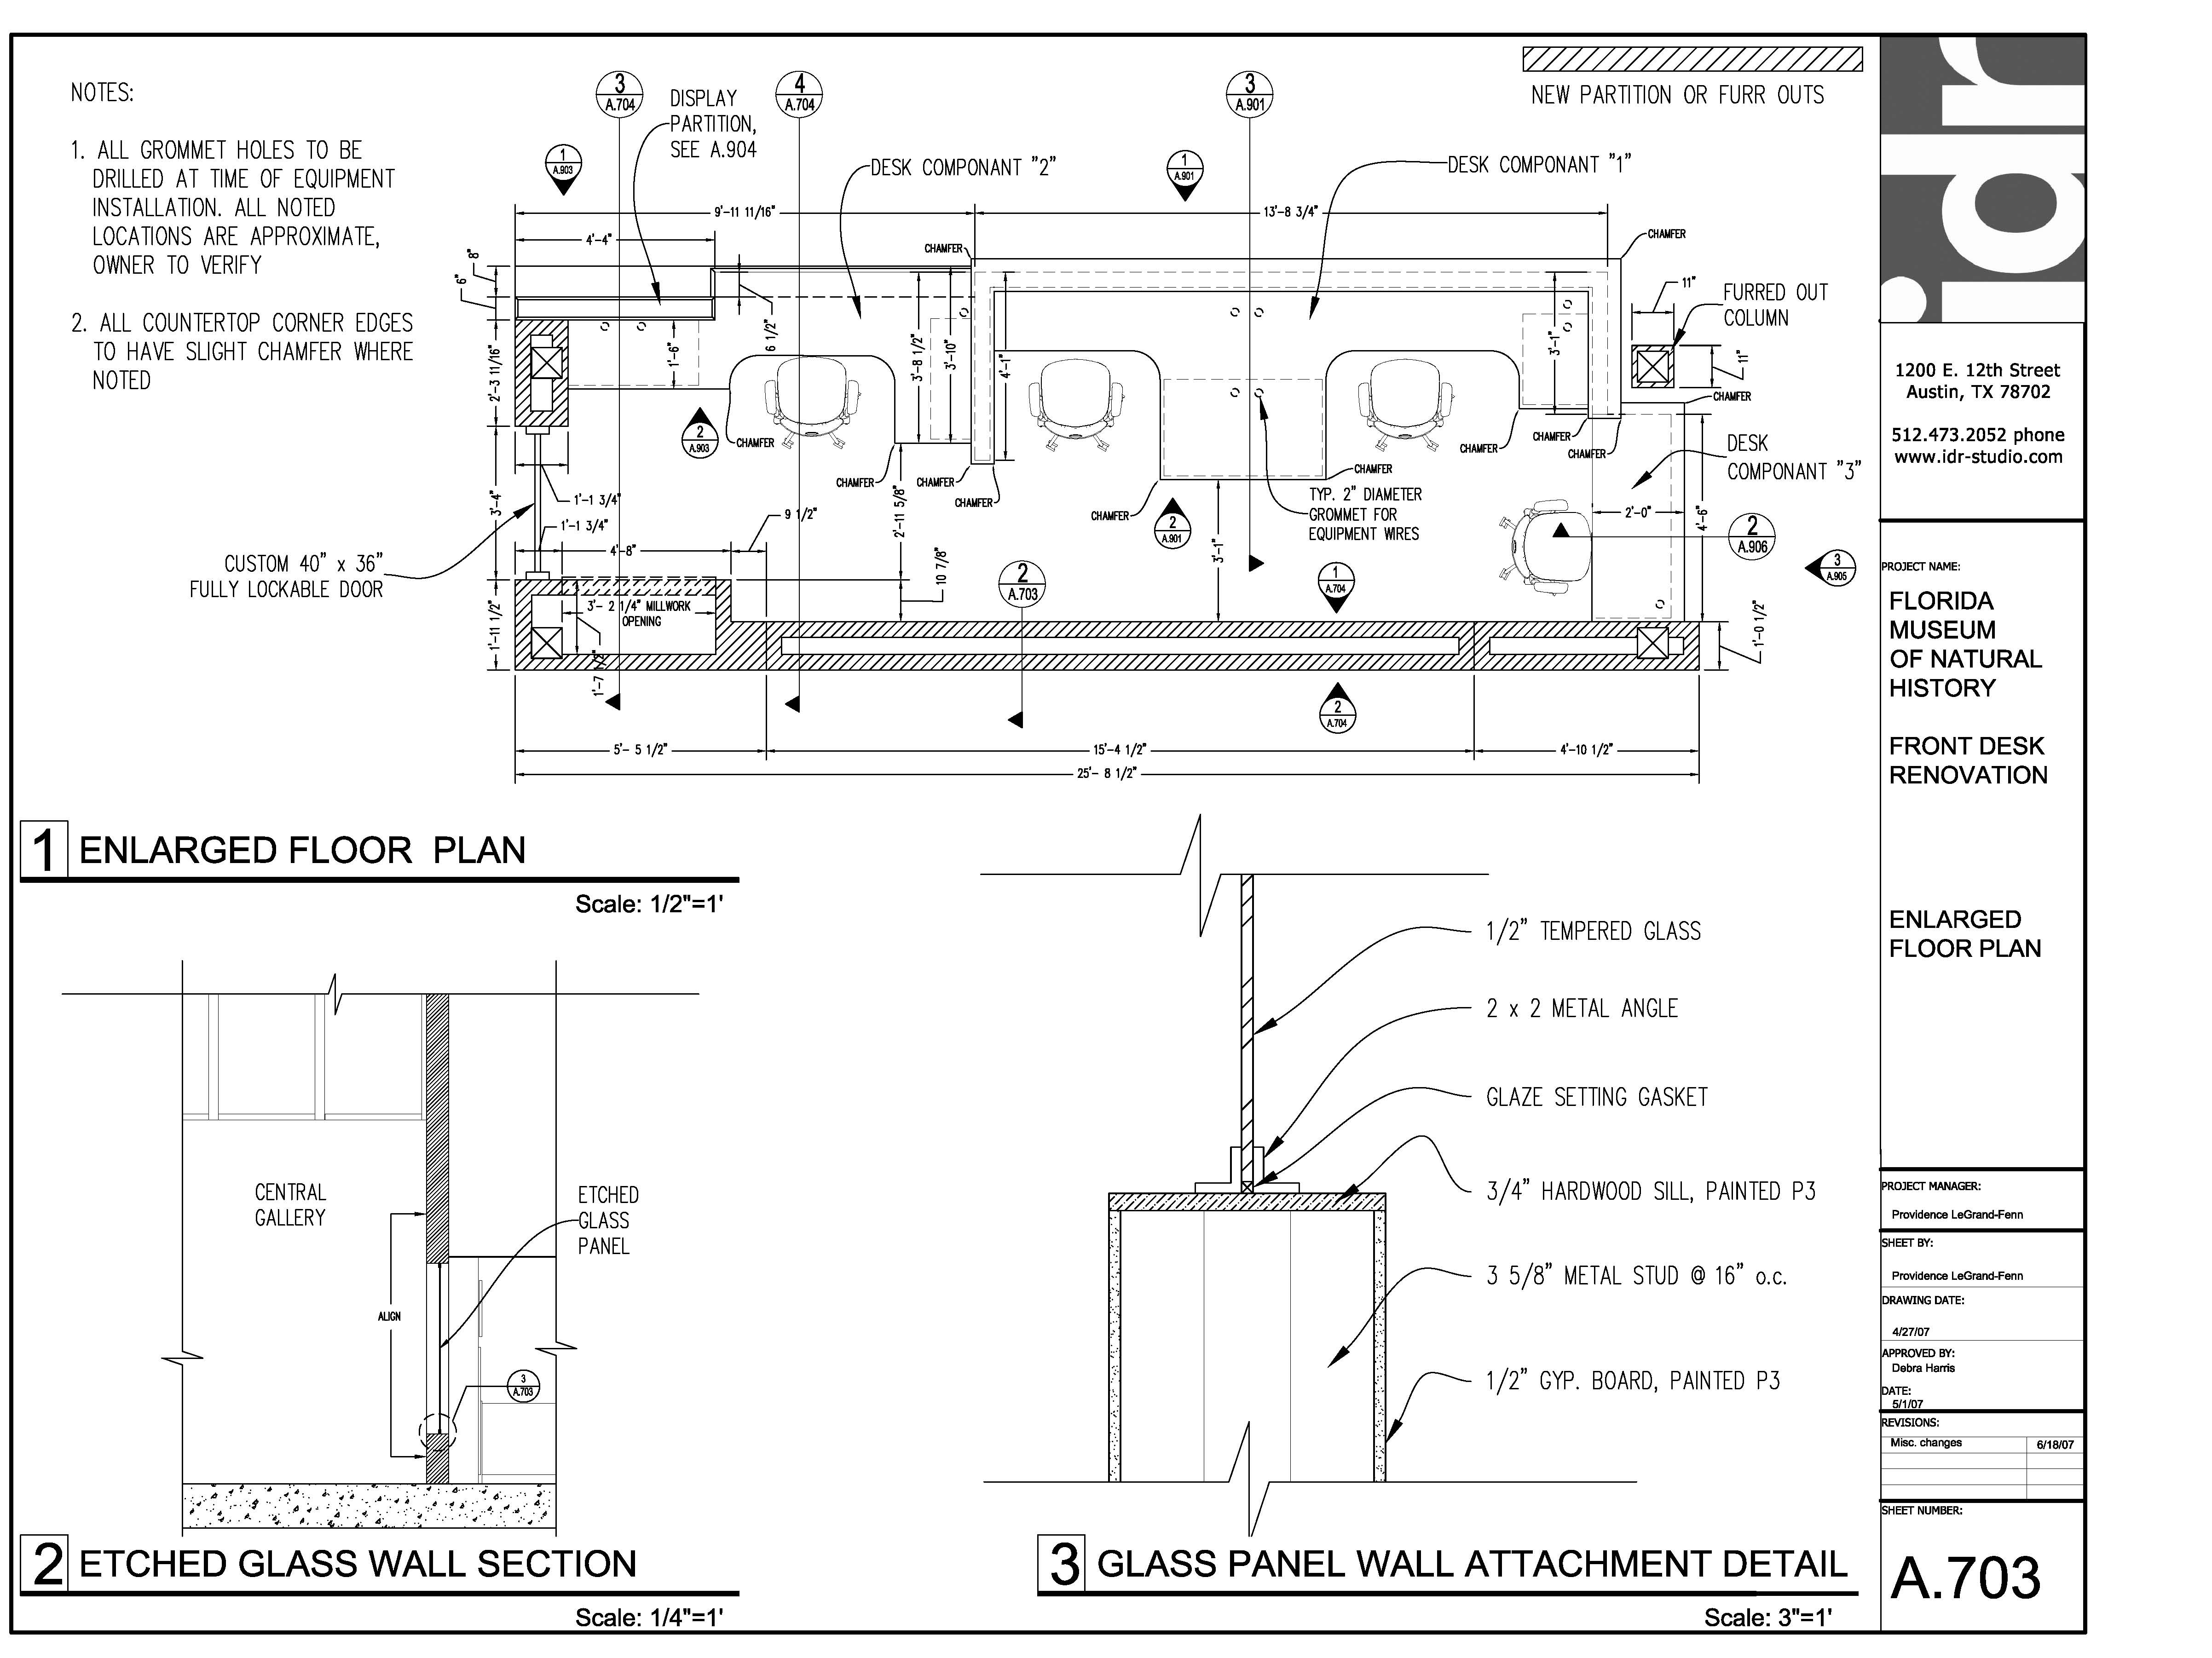 Woodworking reception desk construction drawings PDF Free Download